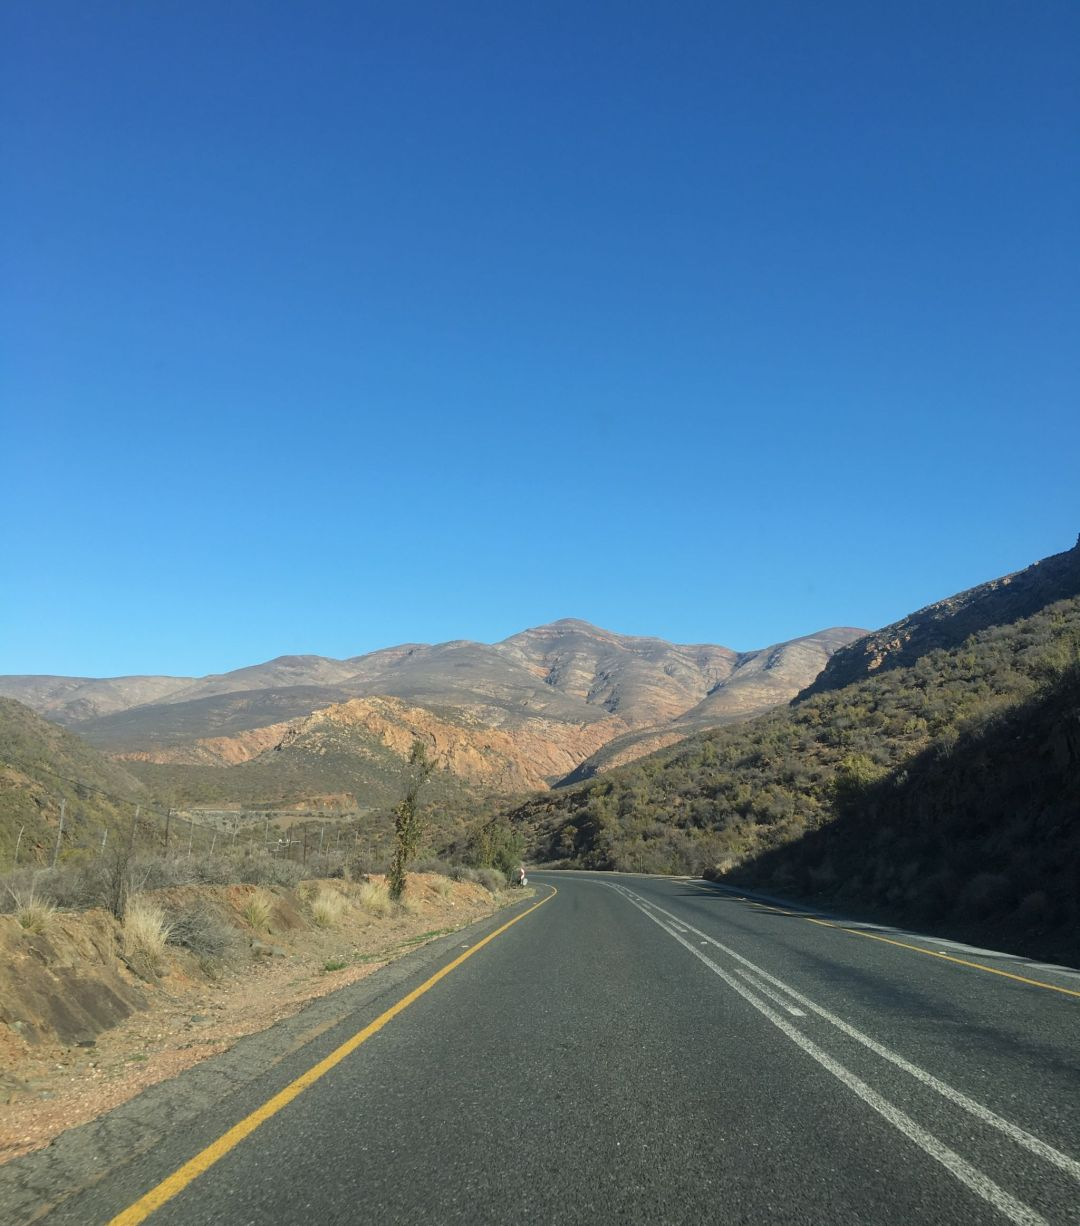 R62 - South Africa